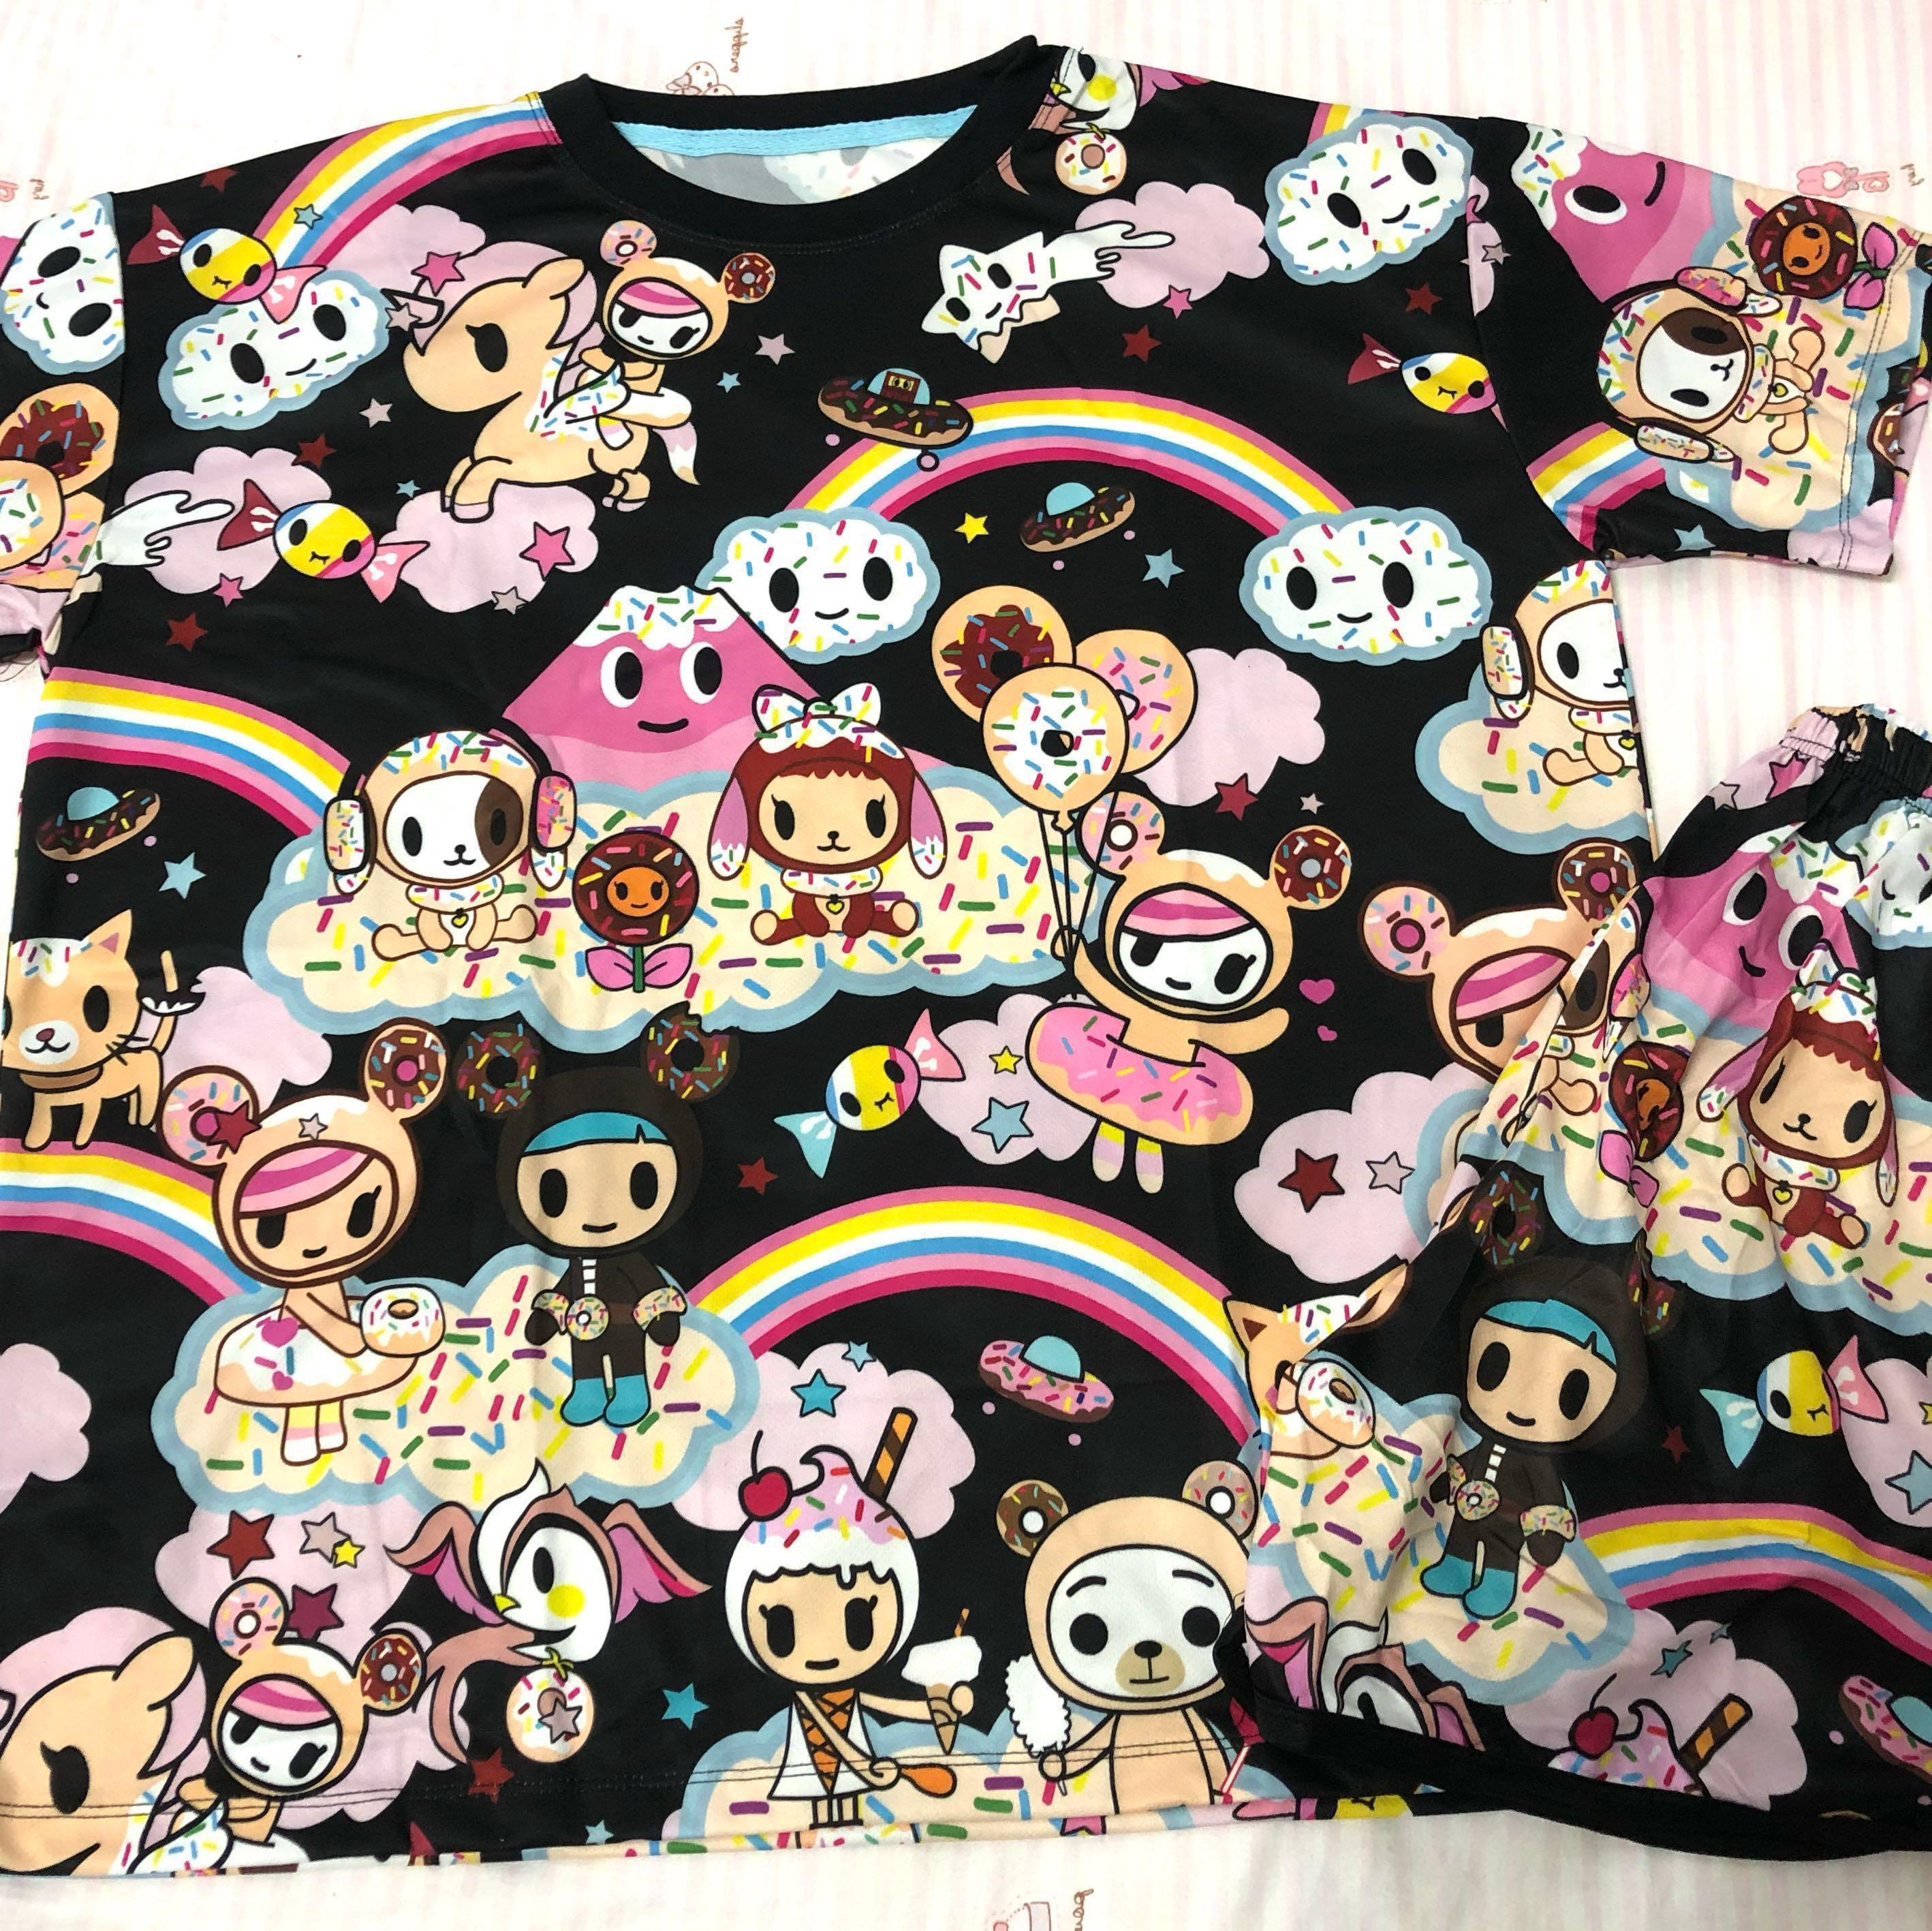 $11* Brand New Tokidoki Black Rainbow Sleepwear Set Dri-fit